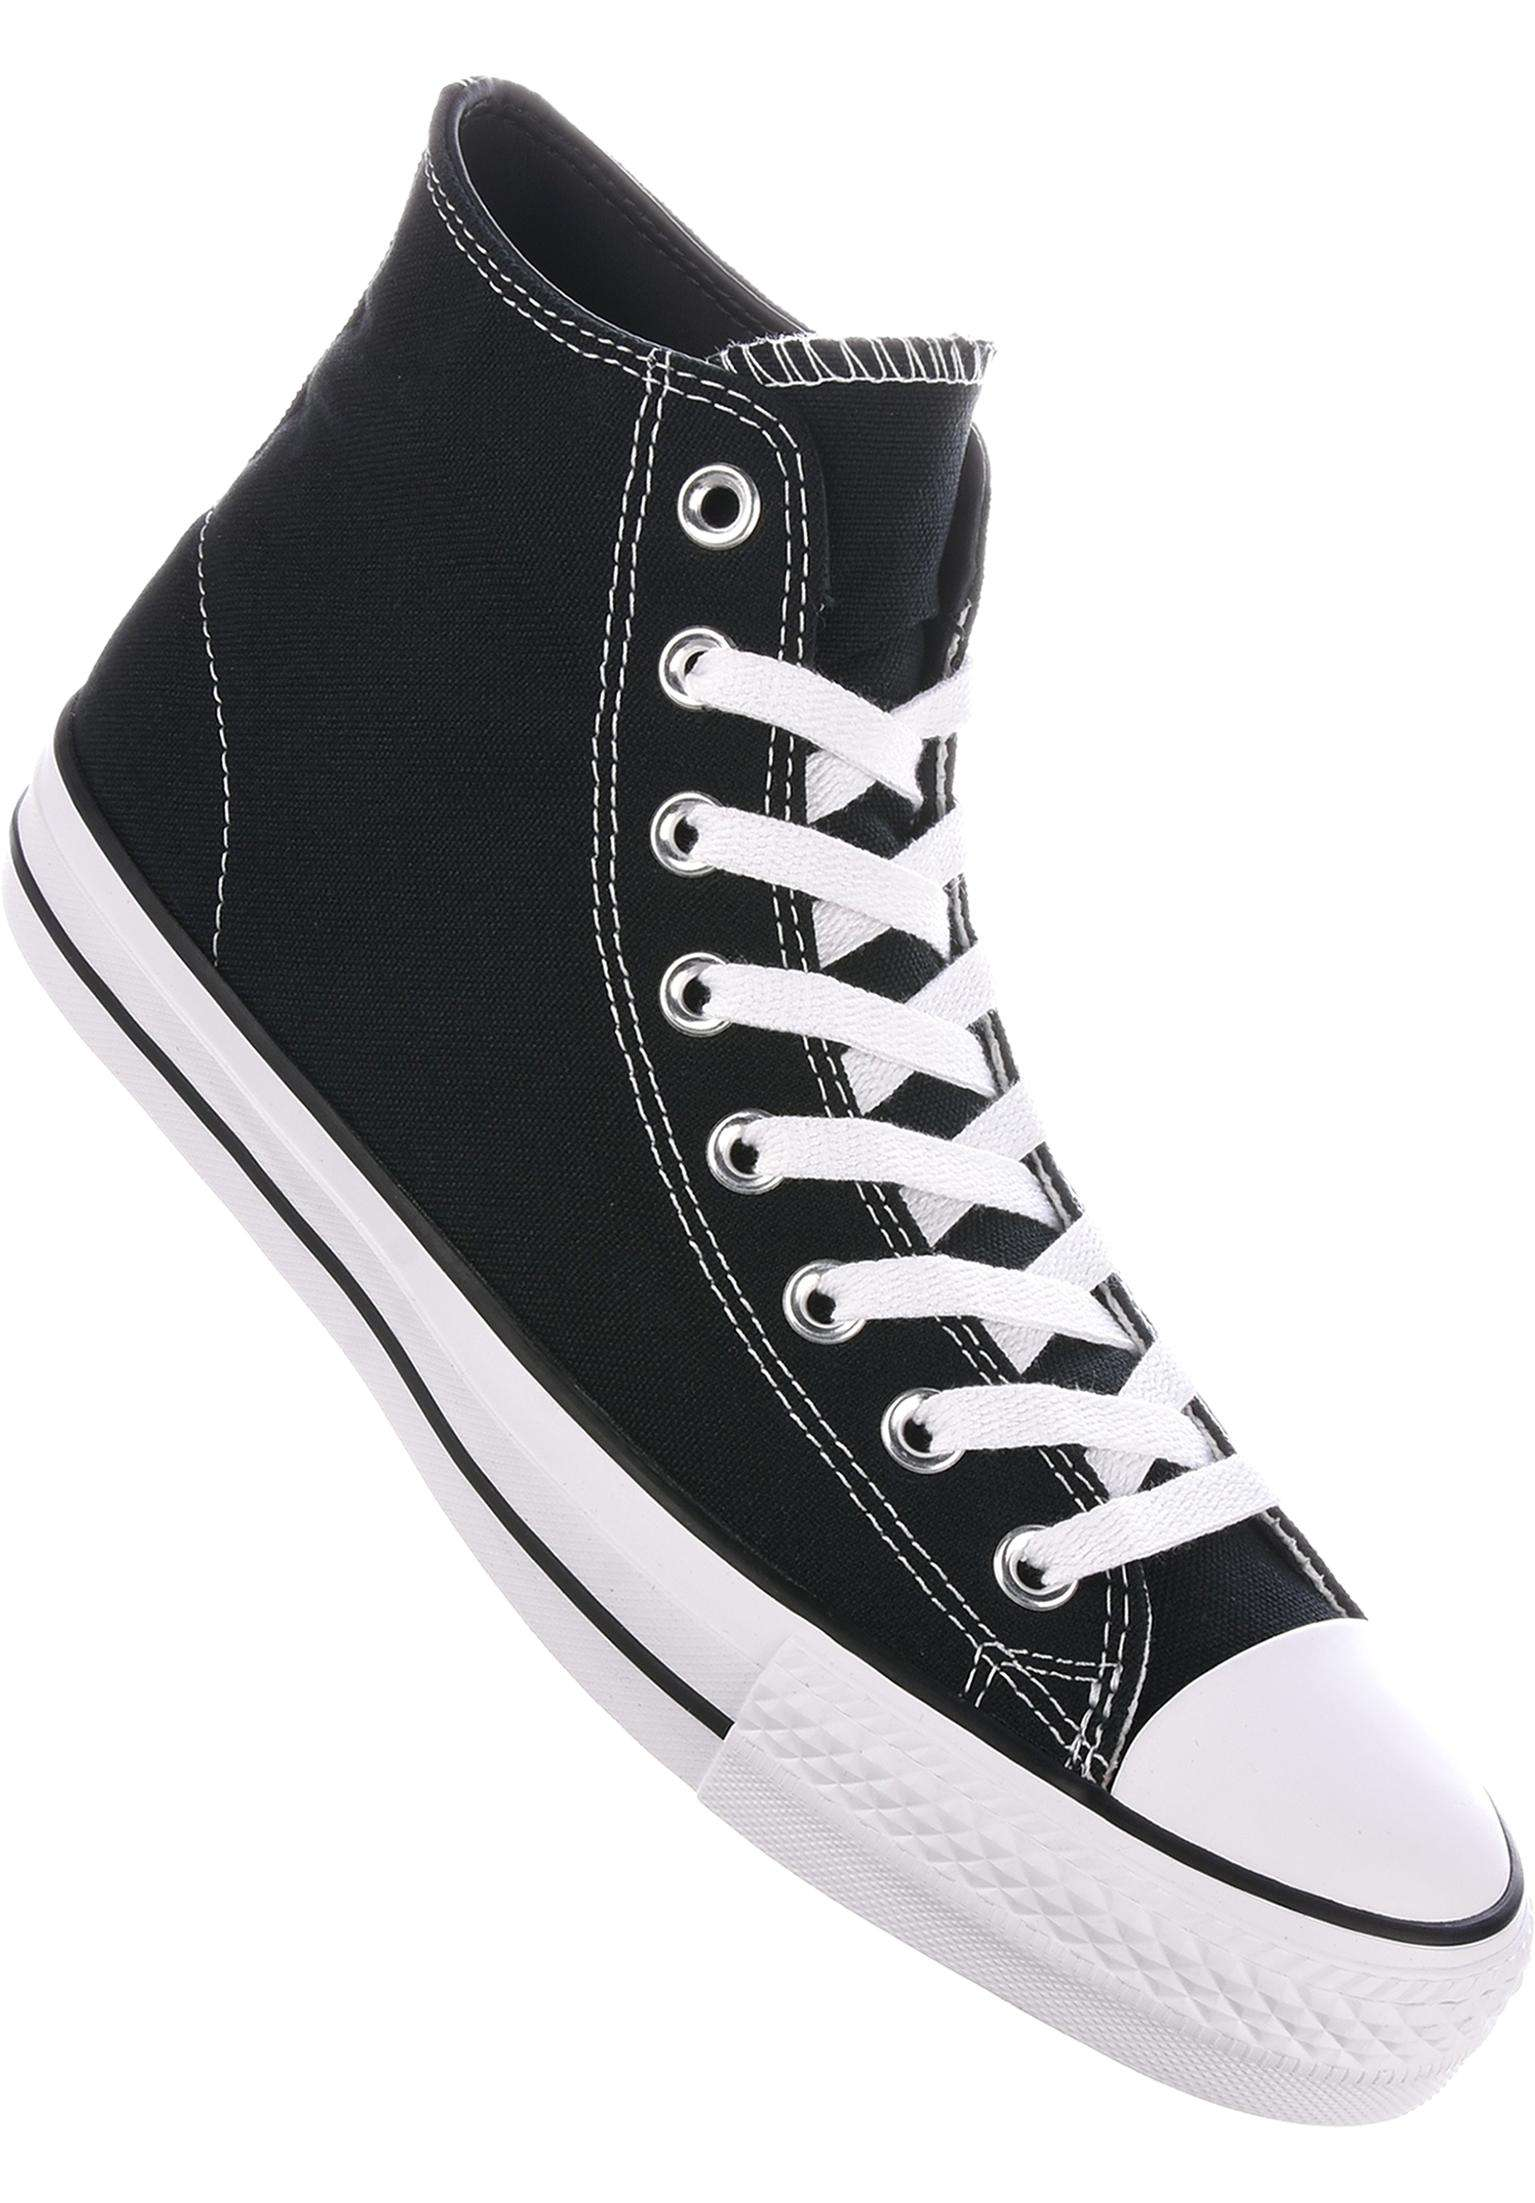 9e0a1419462570 CTAS Pro Hi Converse CONS All Shoes in black-black-white for Men